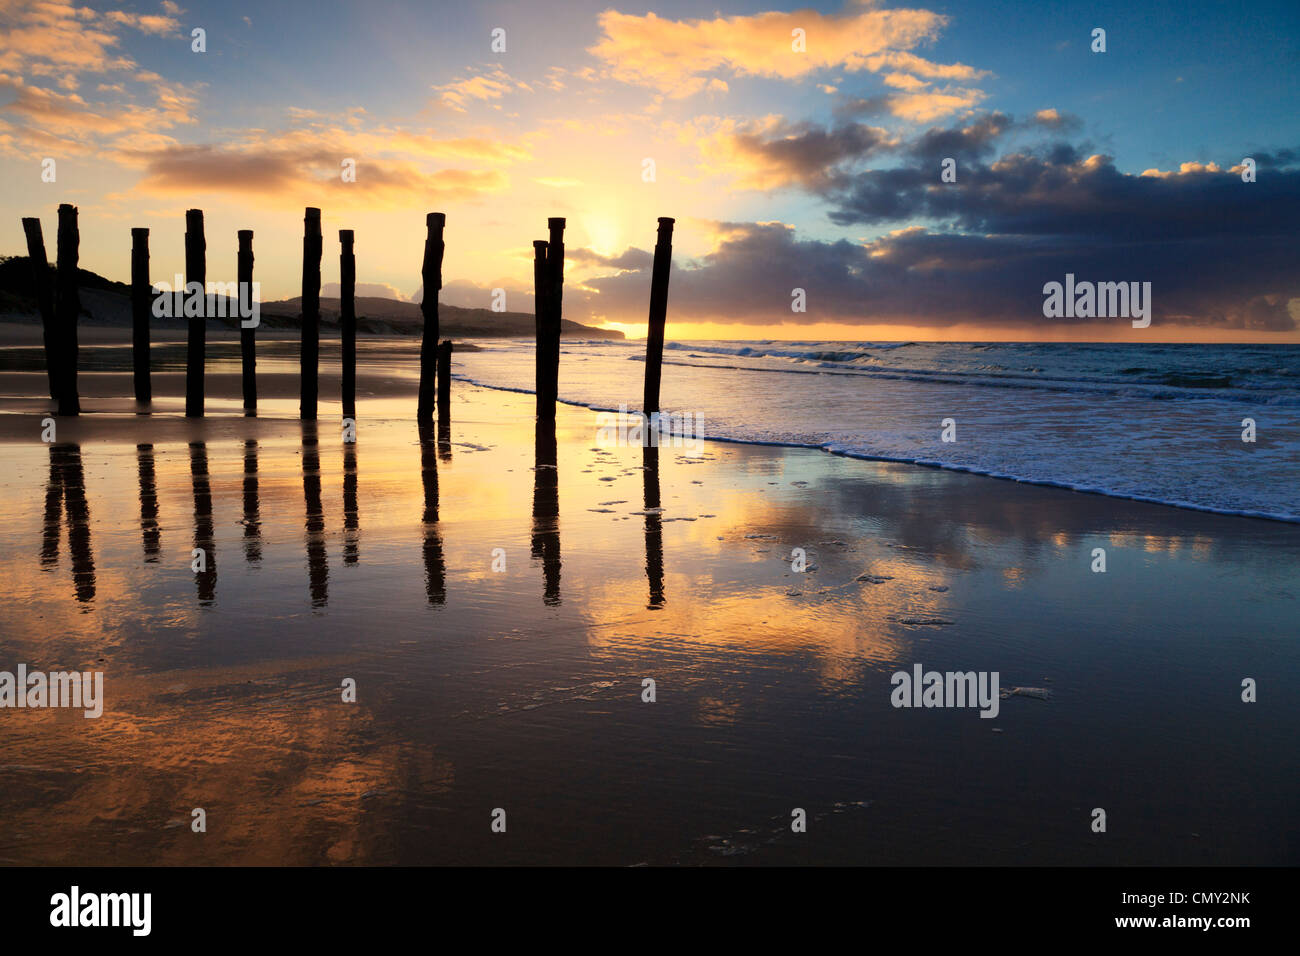 Sunrise at St Clair Beach, Dunedin, Otago, New Zealand. - Stock Image